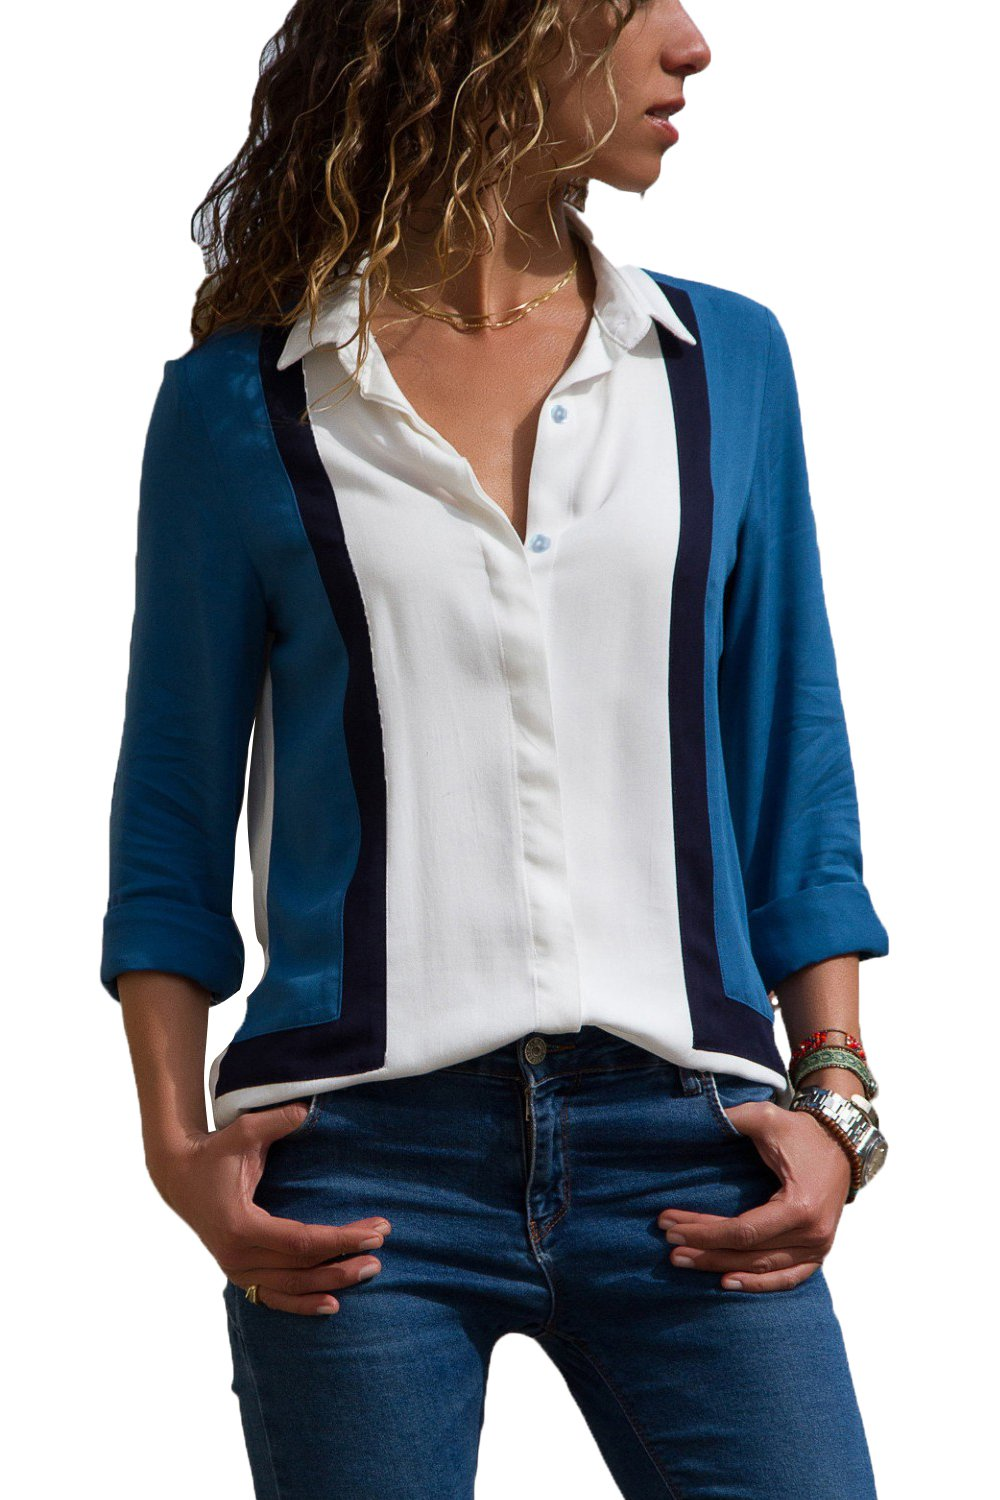 White long-sleeve shirt in blue Size XXL